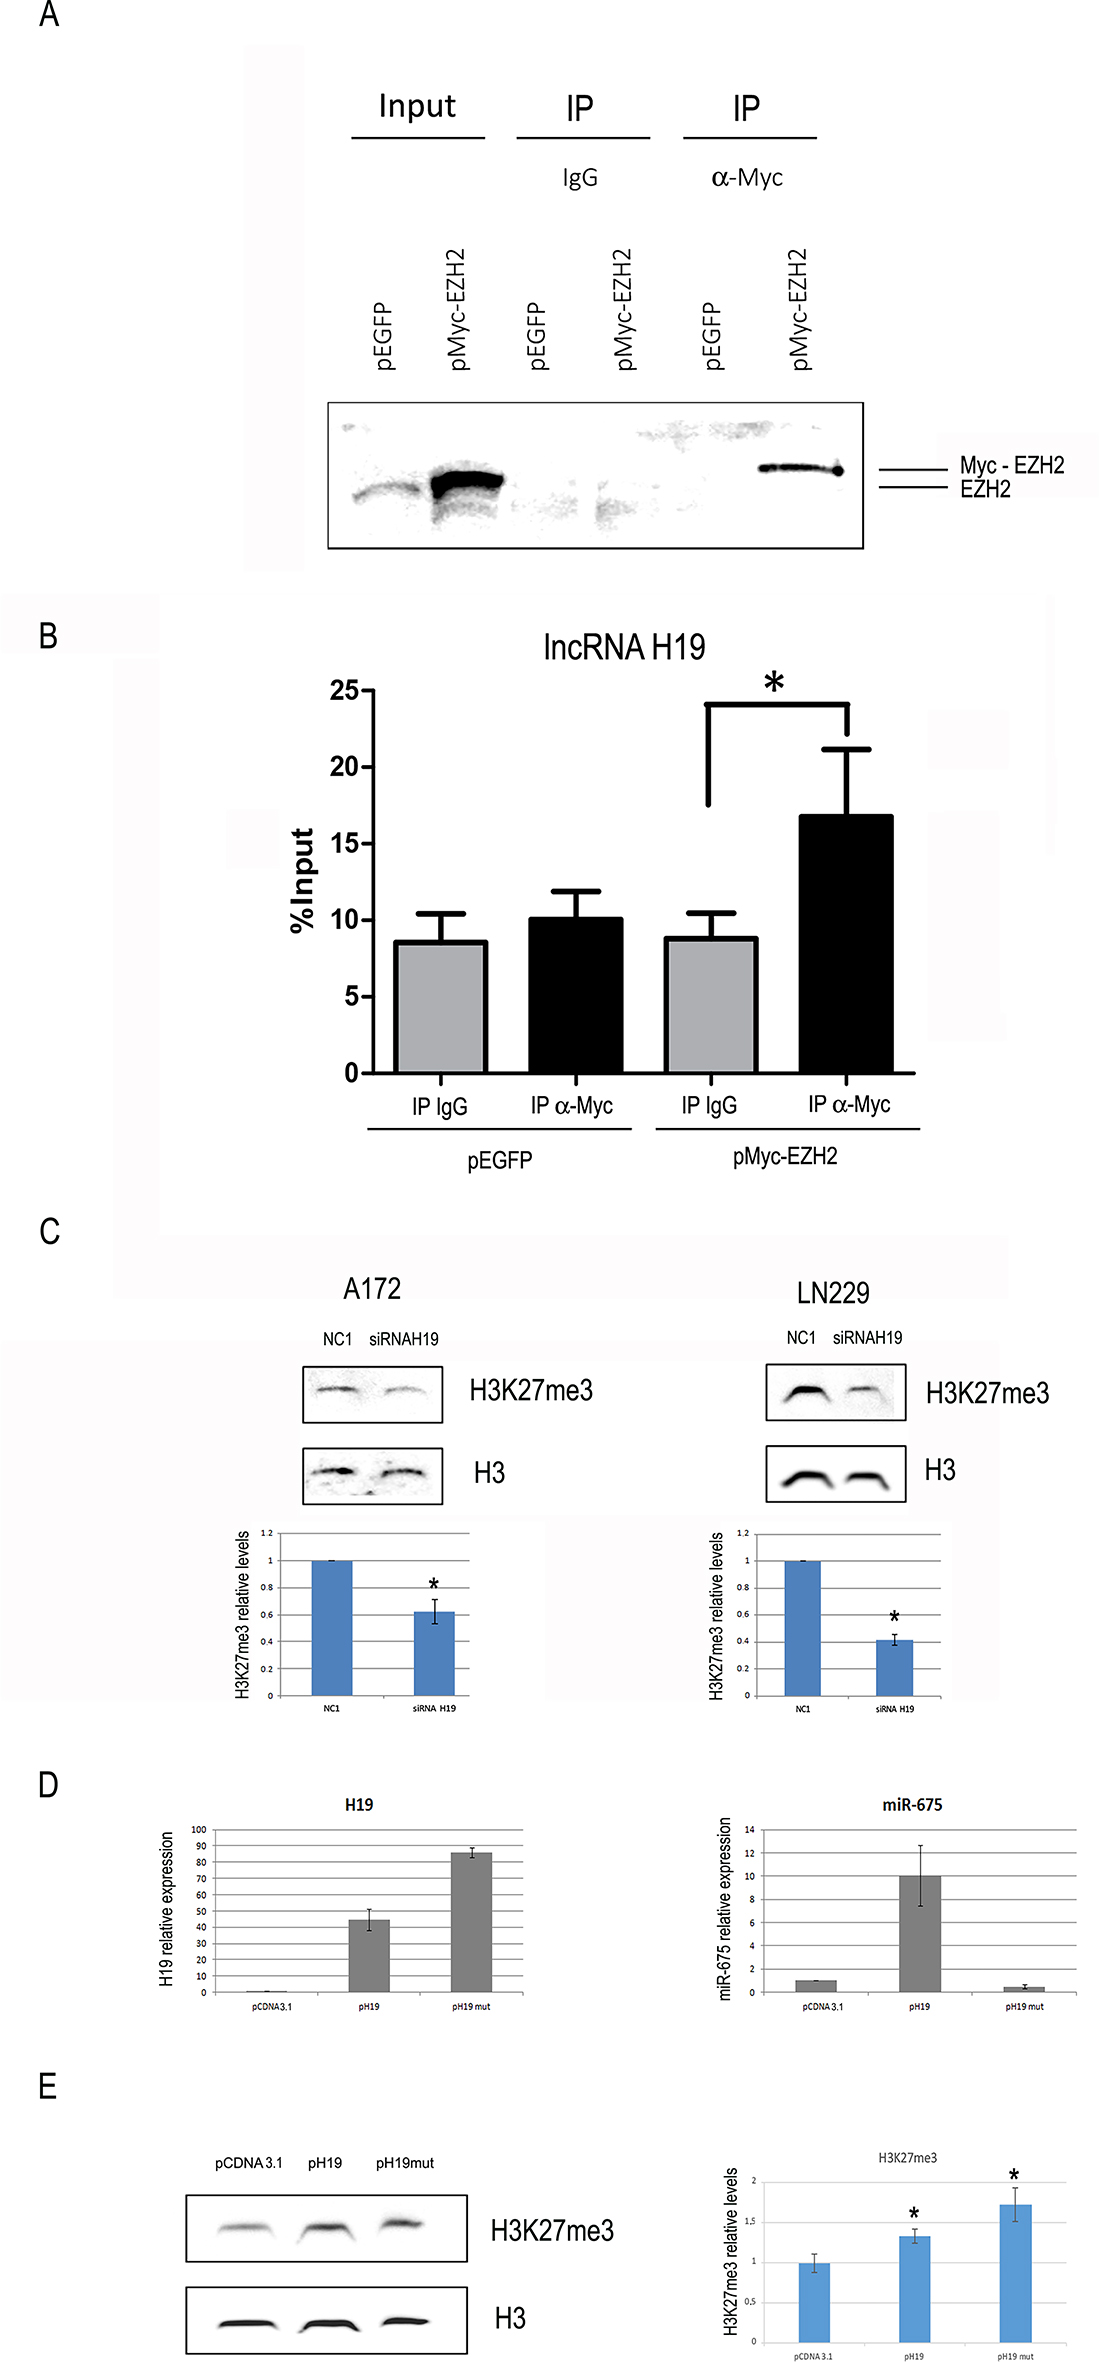 H19 is coimmunoprecipitated with EZH2 and its modulation affects global H3K27 trimethylation in glioblastoma cells.